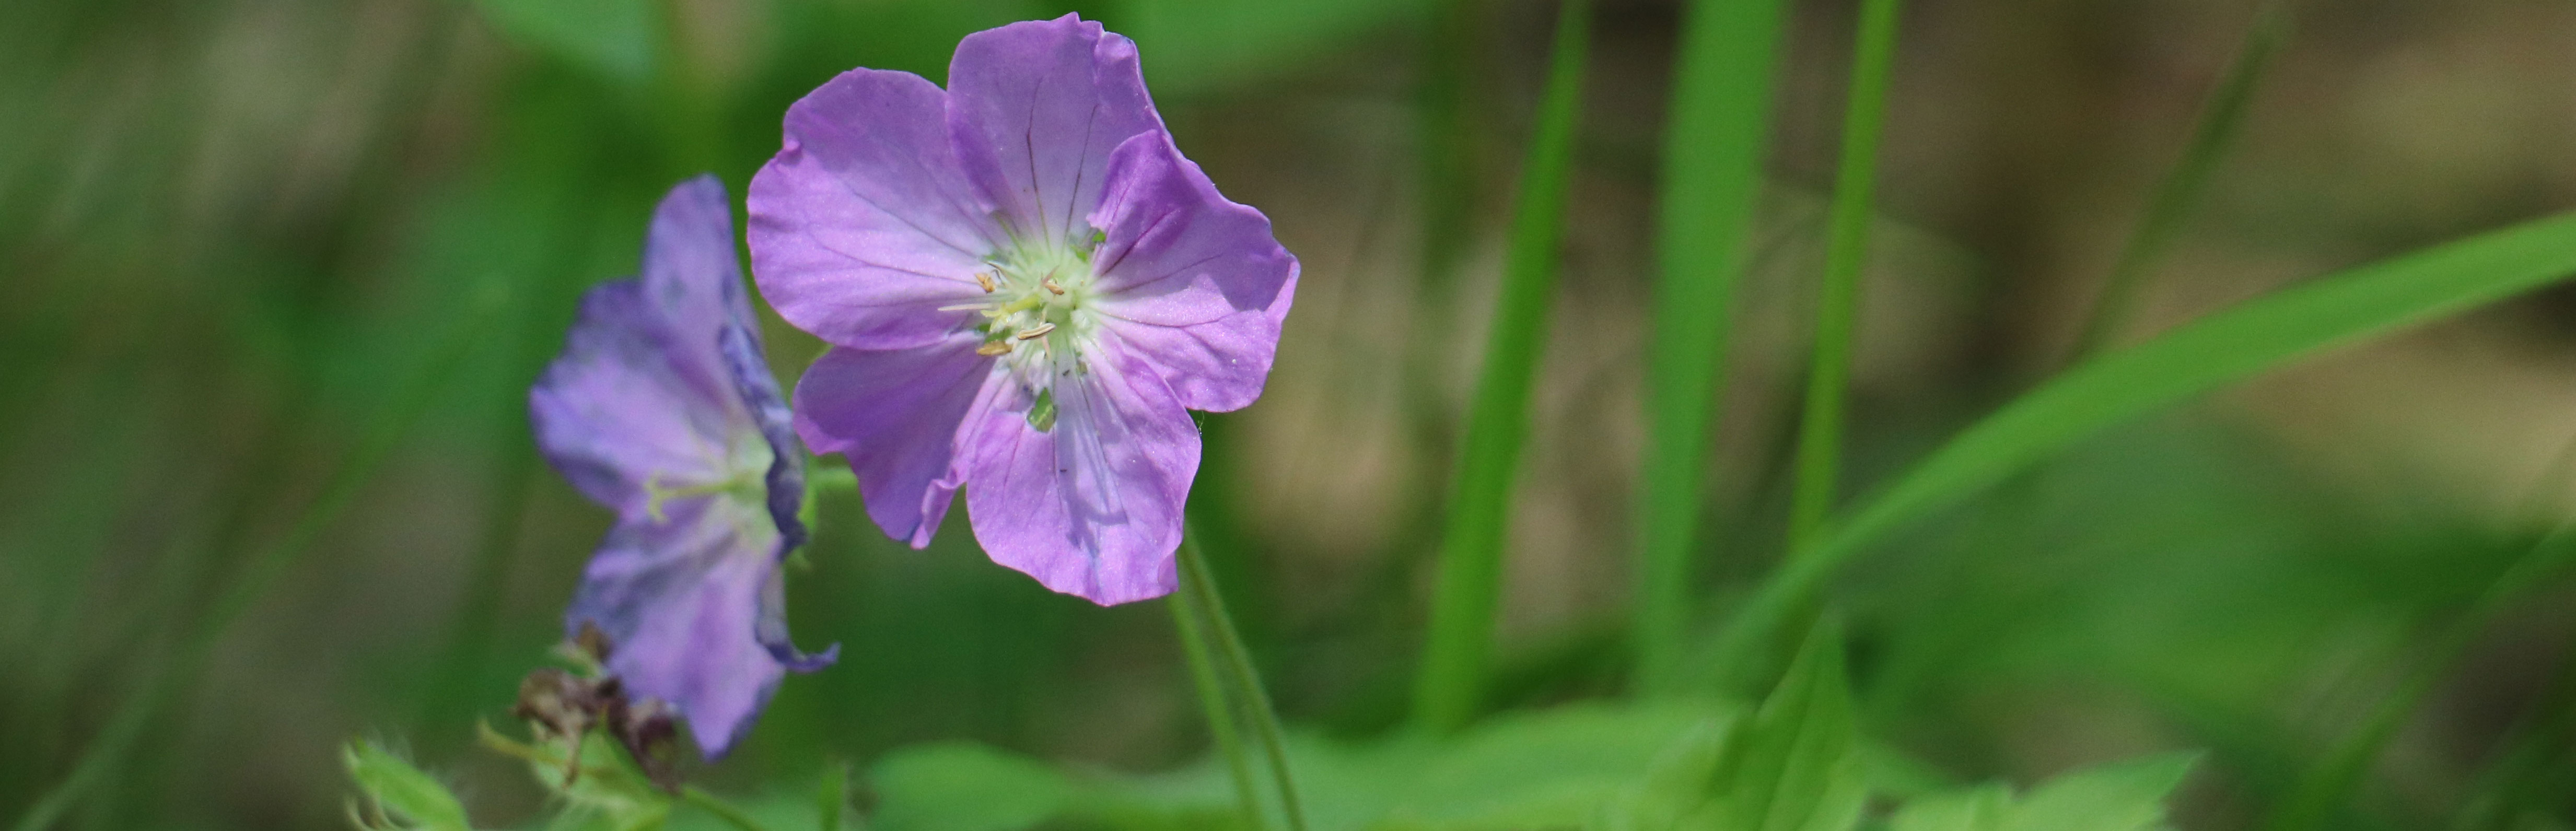 A close-up look at the blooms of a wild geranium, Geranium maculatum.